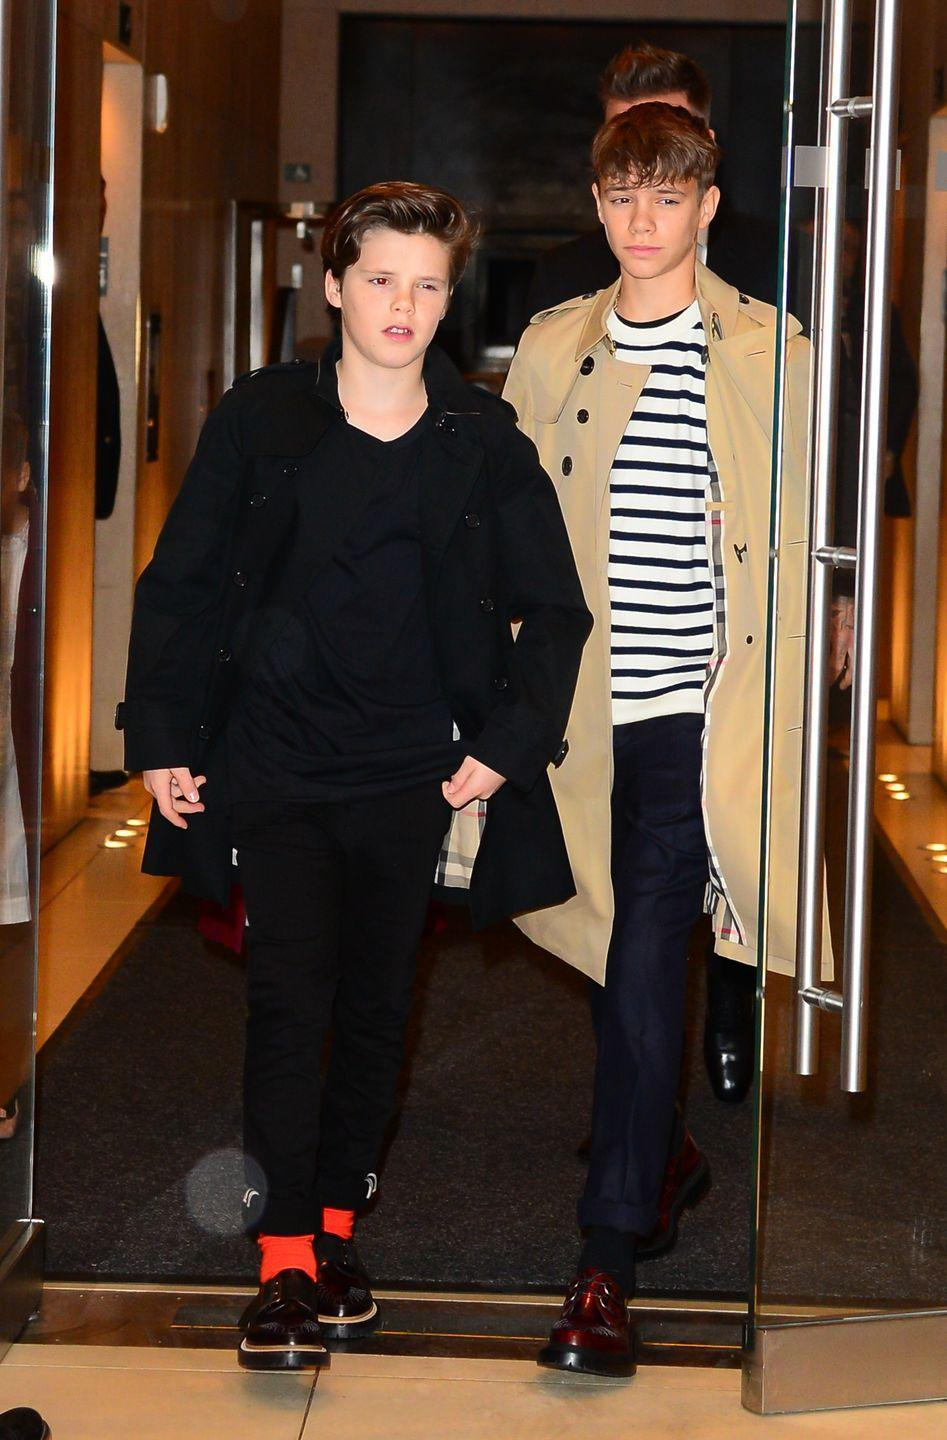 Victoria Beckham's New Family Portrait Shows How Grown Up Romeo and Cruz Have Become